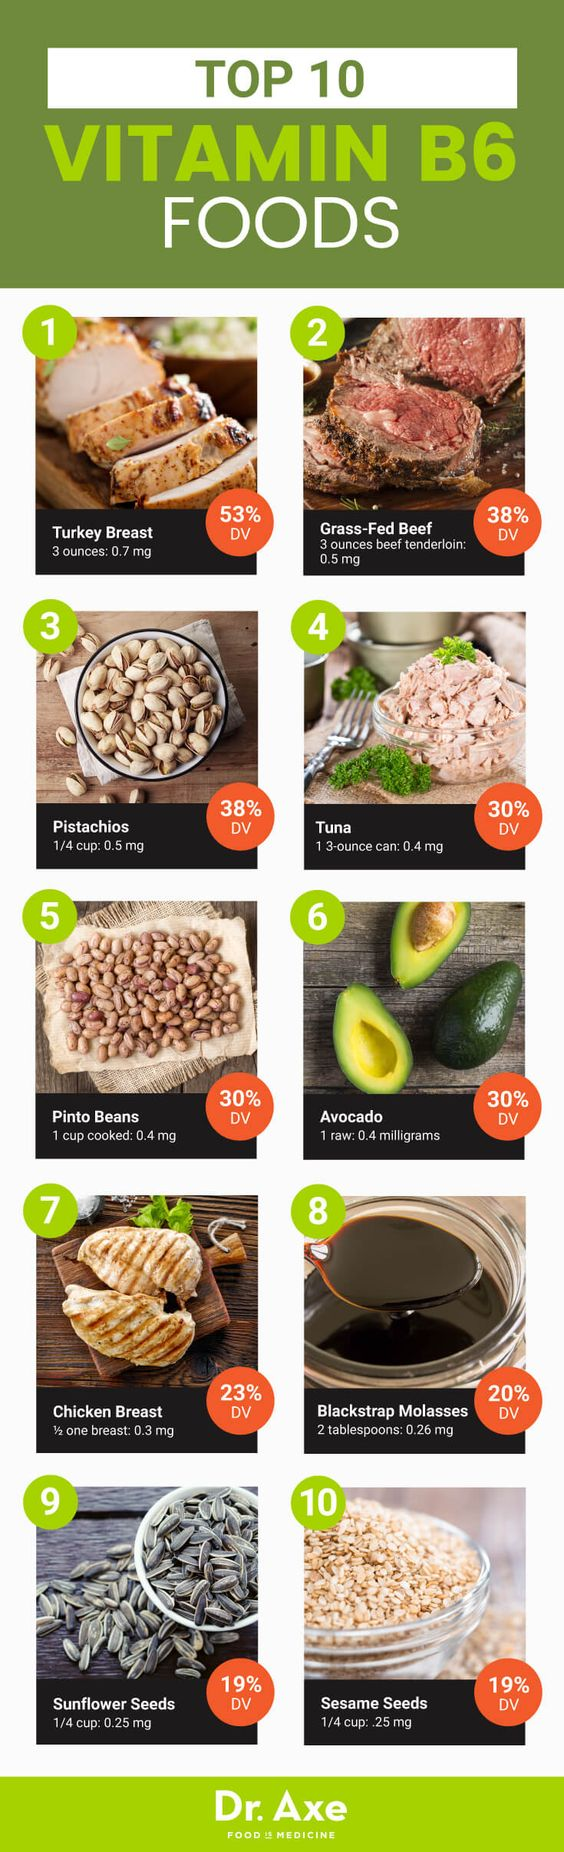 Vitamin B6 foods - Dr. Axe